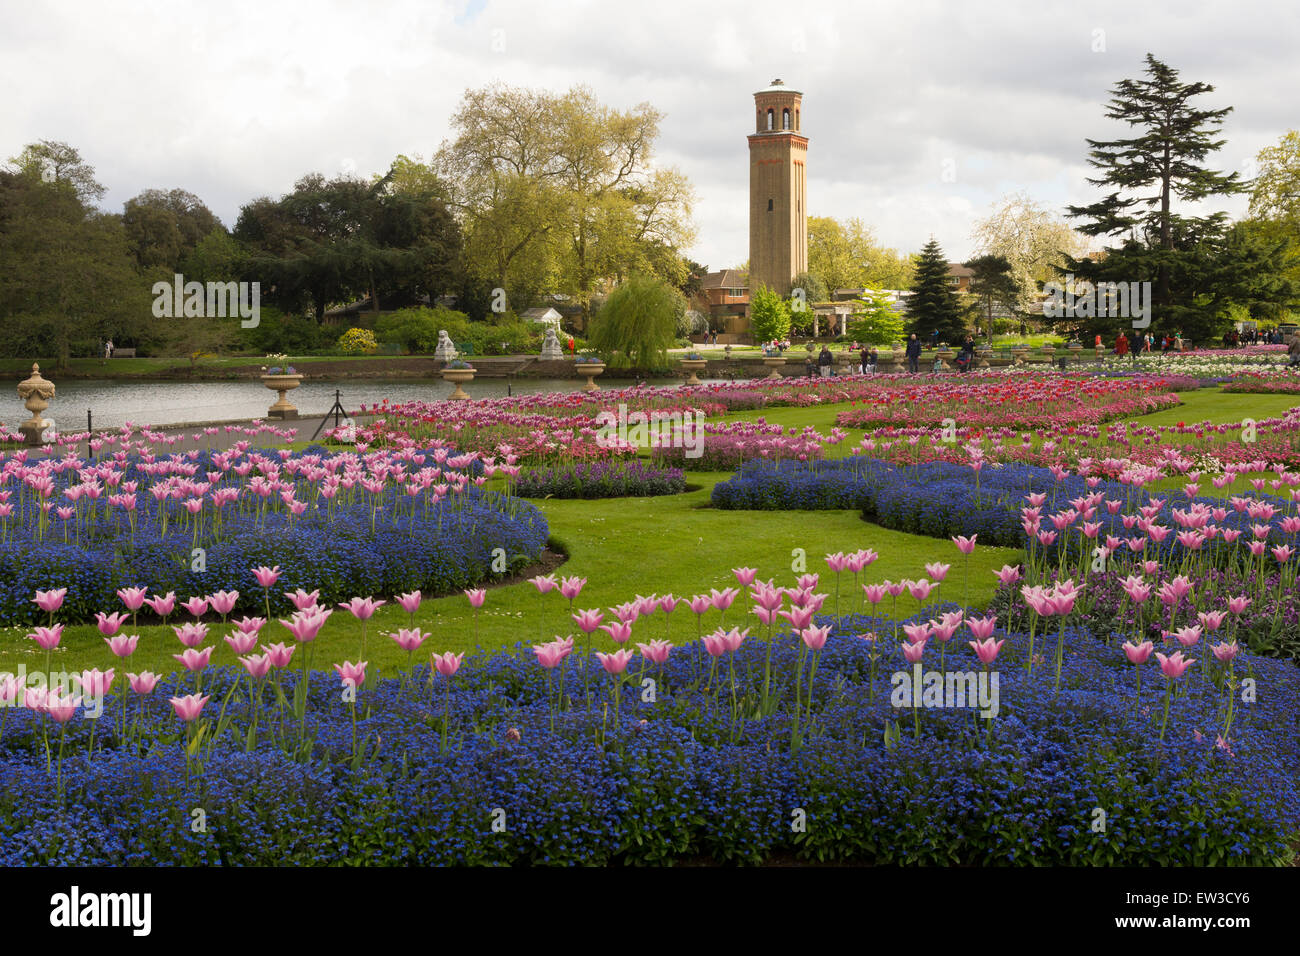 flower-display-at-kew-gardens-with-the-c